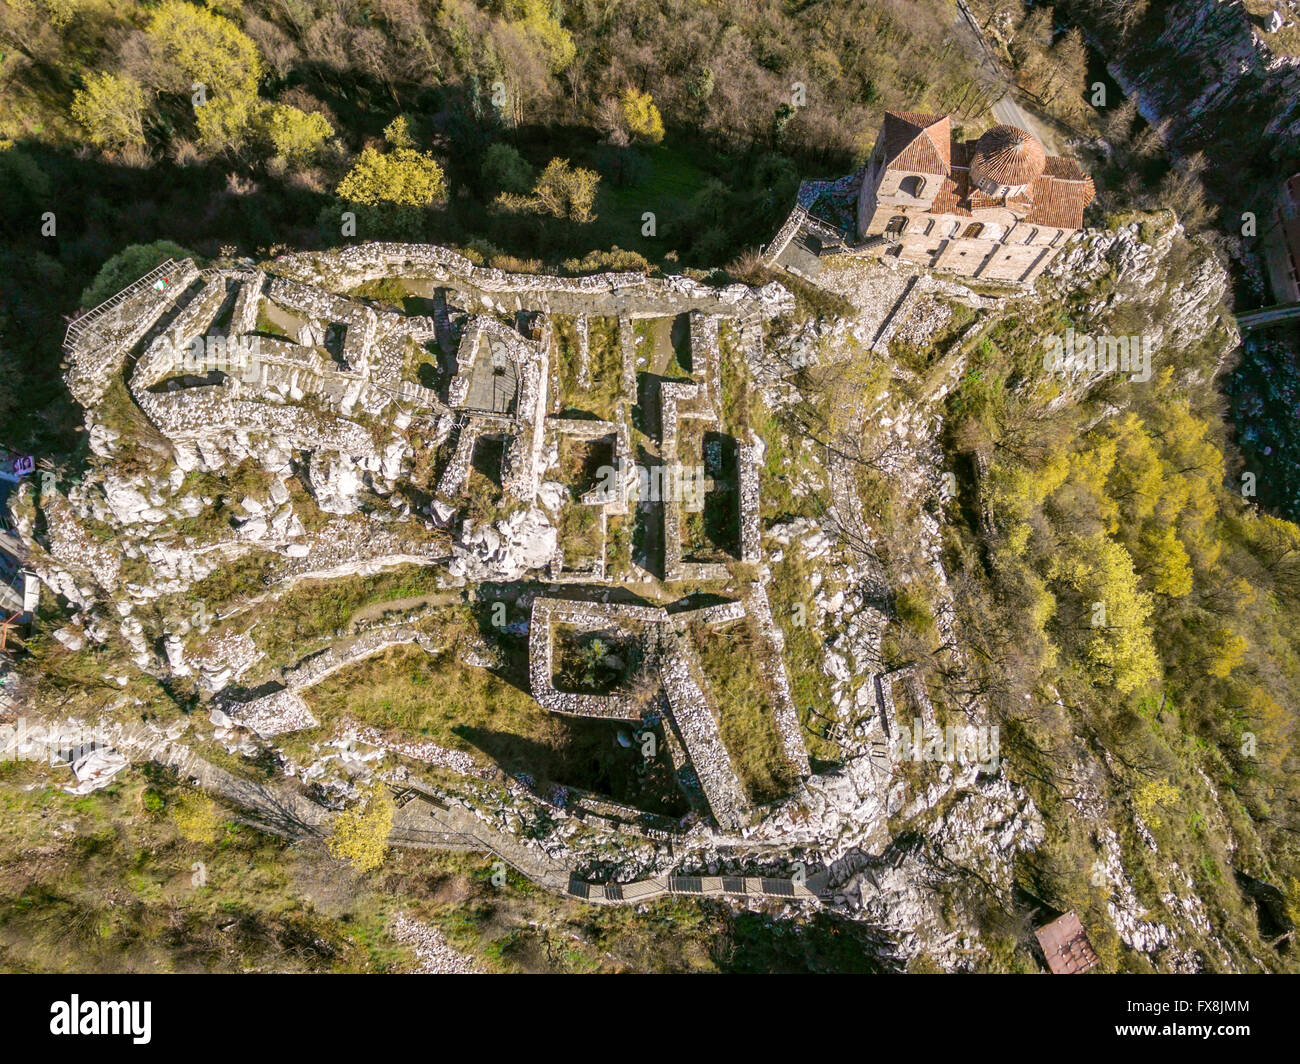 Areal veiw of the Asen's fortress and the Virgin Mary church near Asenovgrad city in Bulgaria. Stock Photo